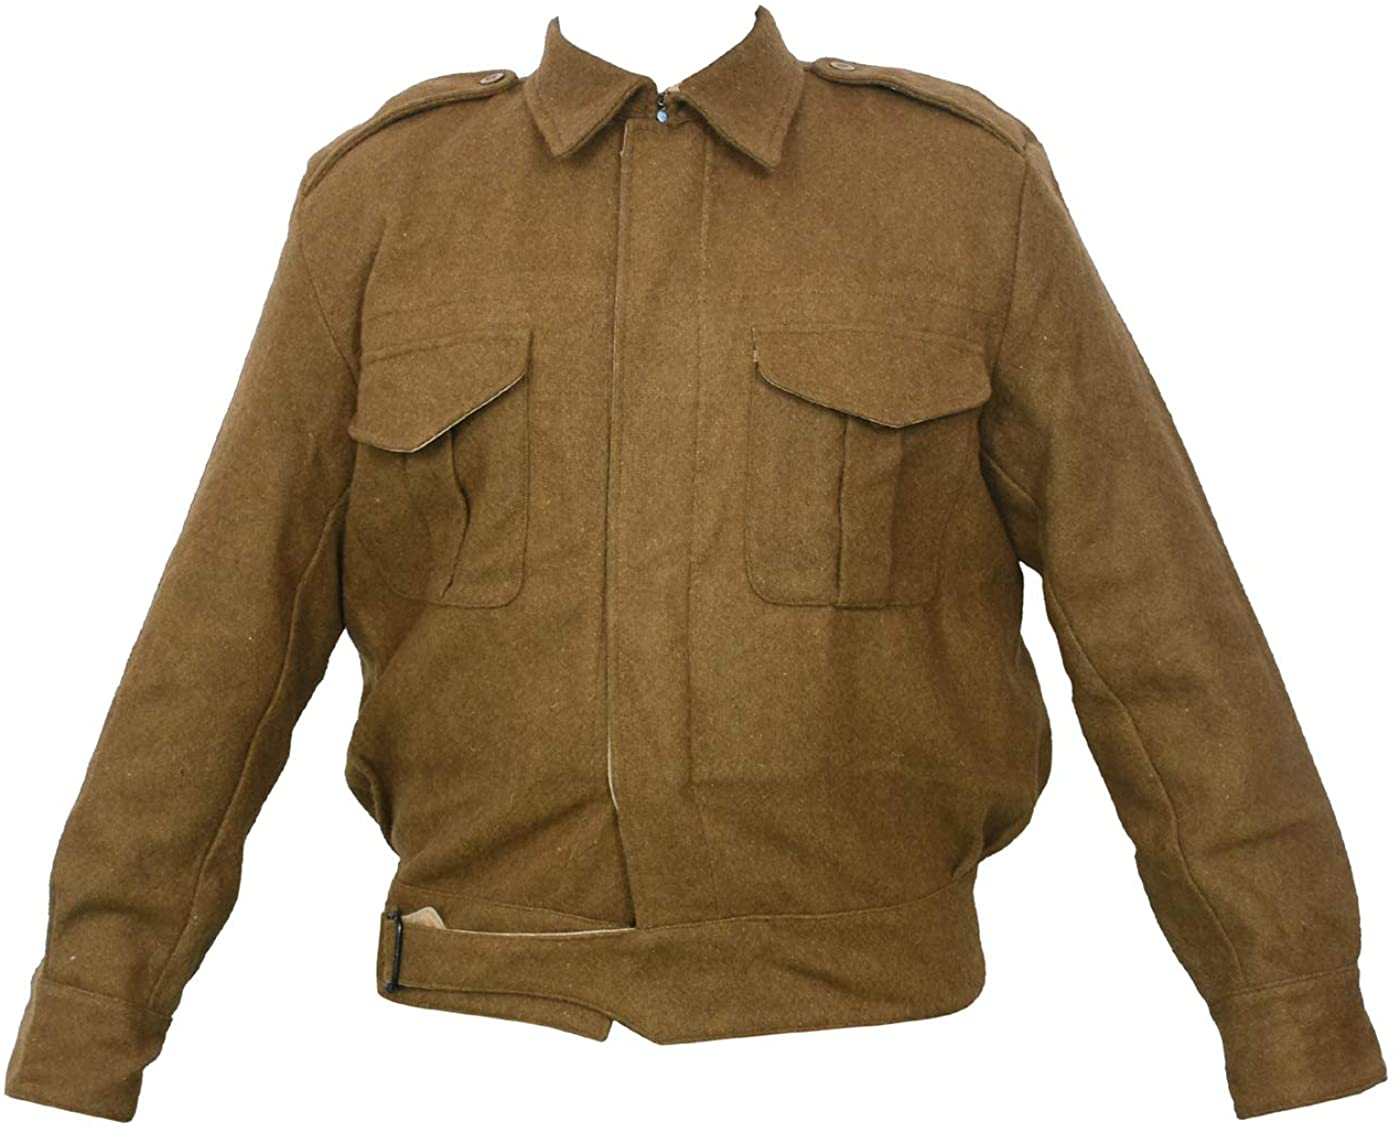 WW2 Reproduction British 37 Pattern Battle Dress Uniform Wool Tunic